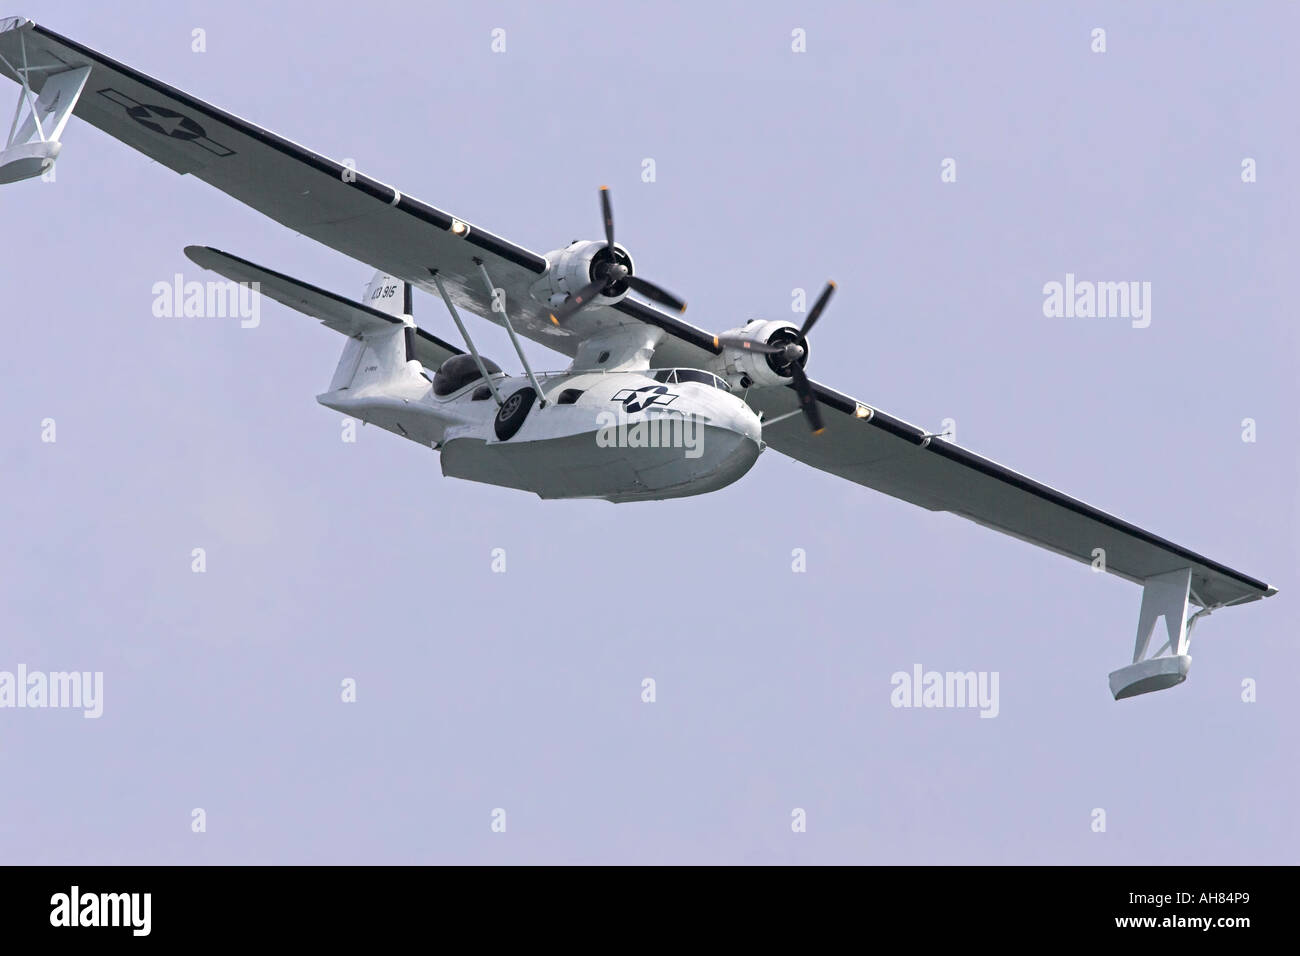 consolidated pby catalina flying boat sea float - Stock Image